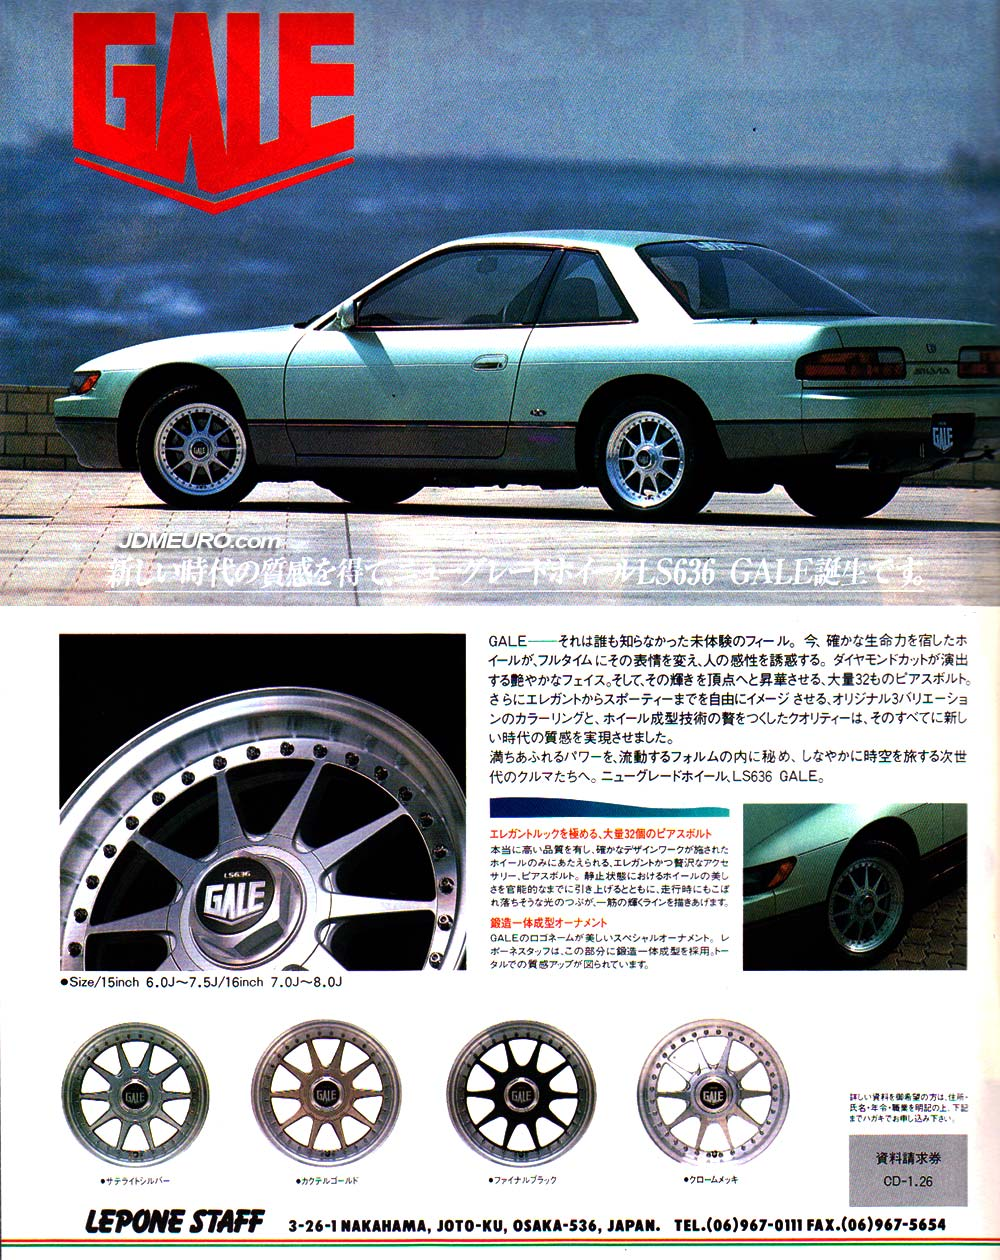 GALE LS636 Wheels by Lepone Staff - JDM Wheels